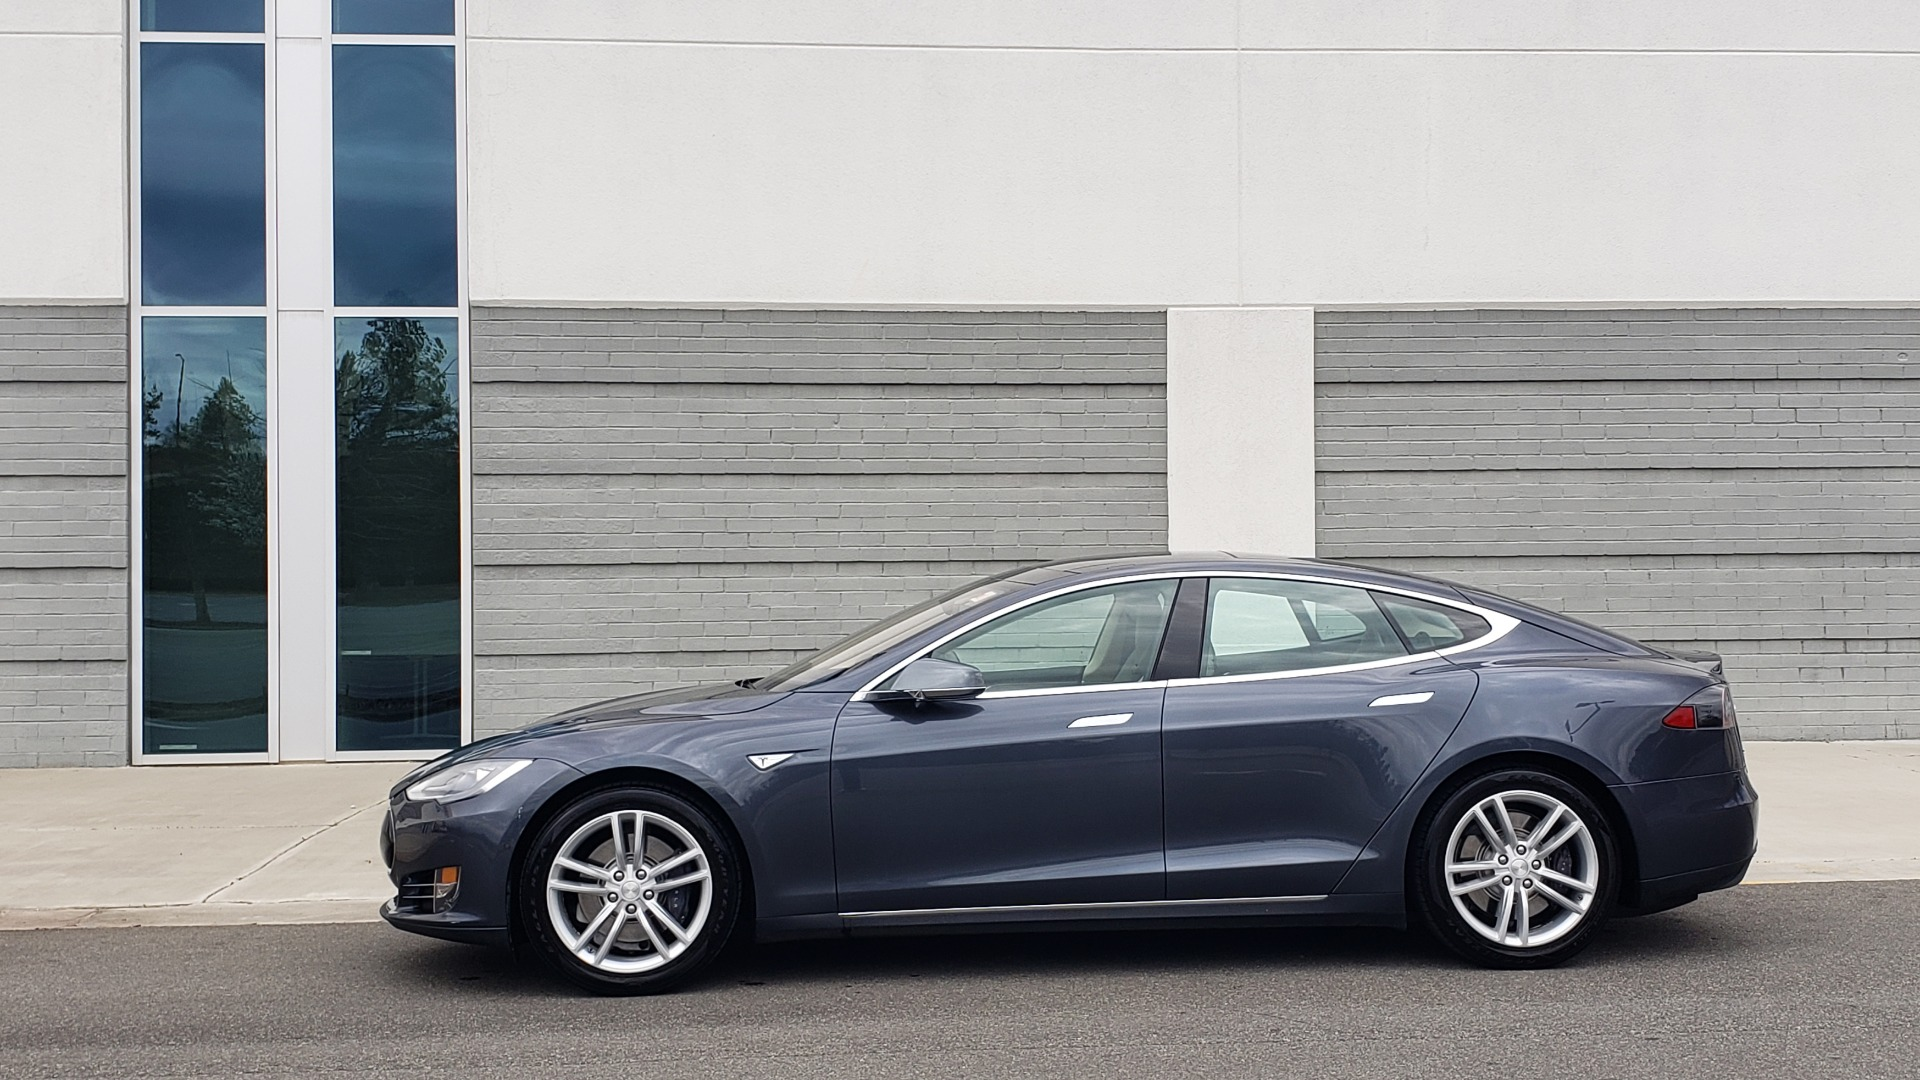 Used 2014 Tesla MODEL S 60 kWh BATTERY / TECH / NAV / SUBZERO / SUNROOF / REARVIEW for sale Sold at Formula Imports in Charlotte NC 28227 4